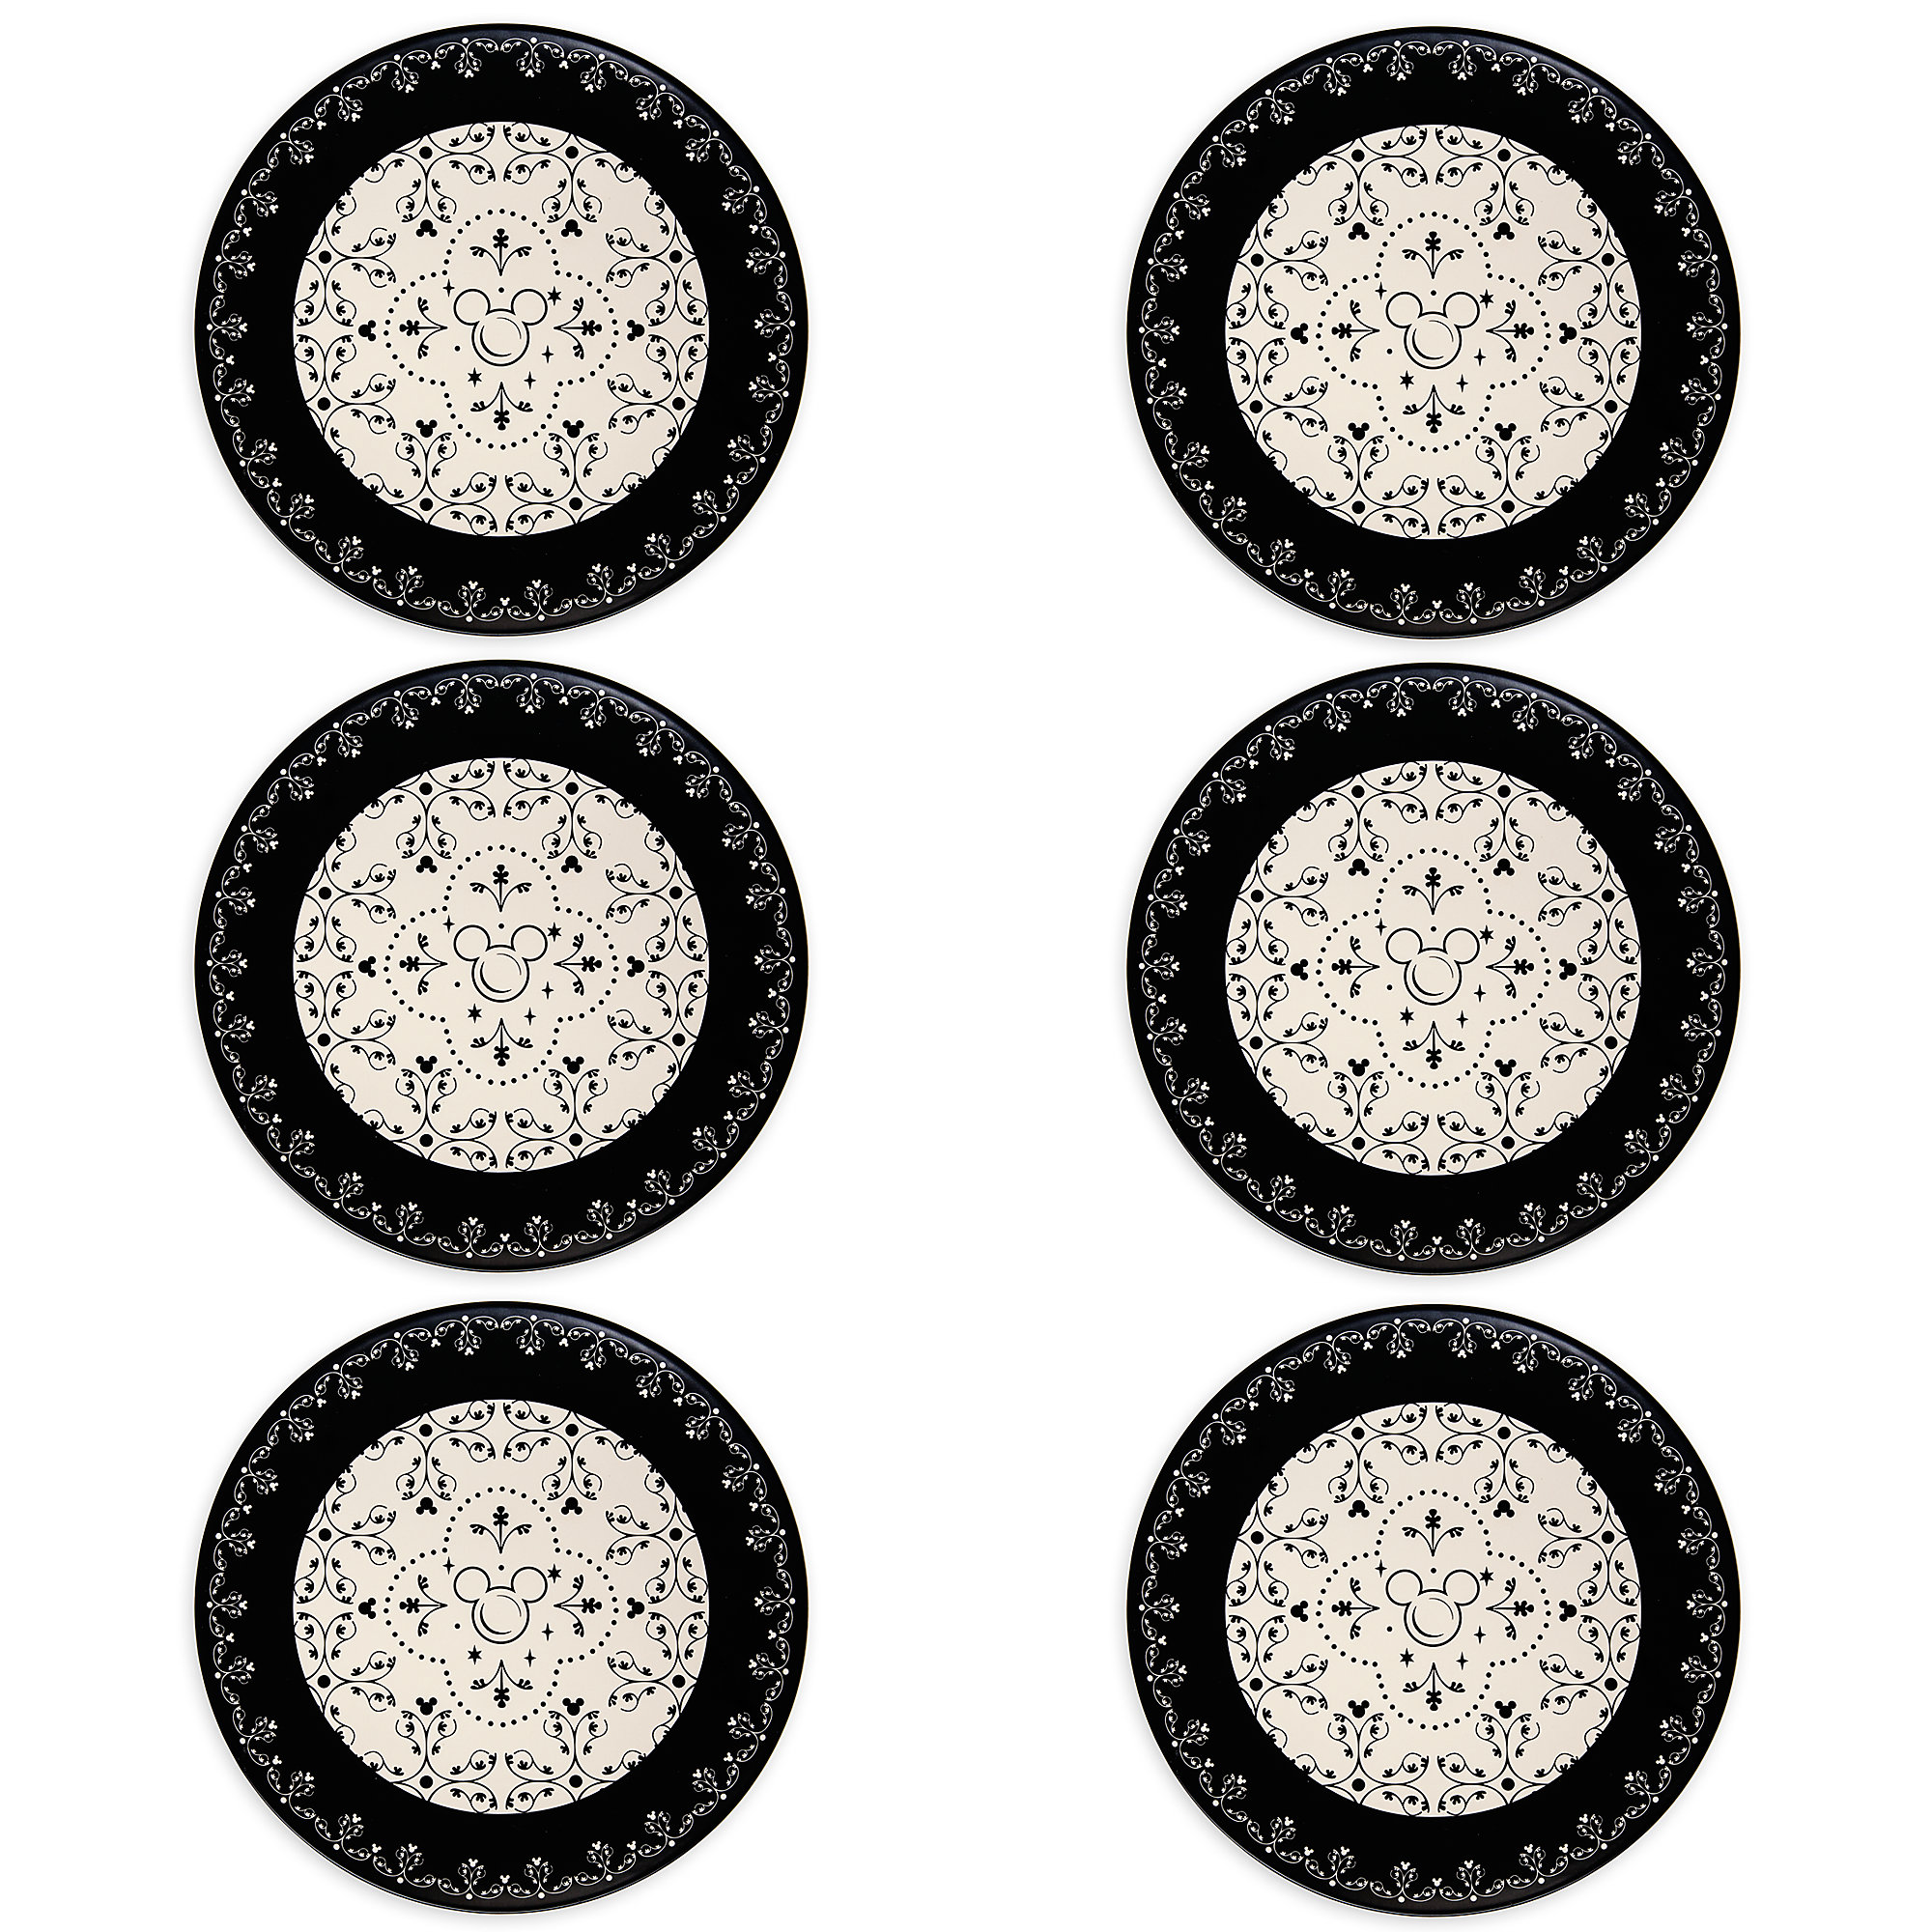 Thumbnail Image of Mickey Mouse Icon Dinner Plate Set - Disney Dining Collection - Black /  sc 1 st  shopDisney & Mickey Mouse Icon Dinner Plate Set - Disney Dining Collection - Black / White